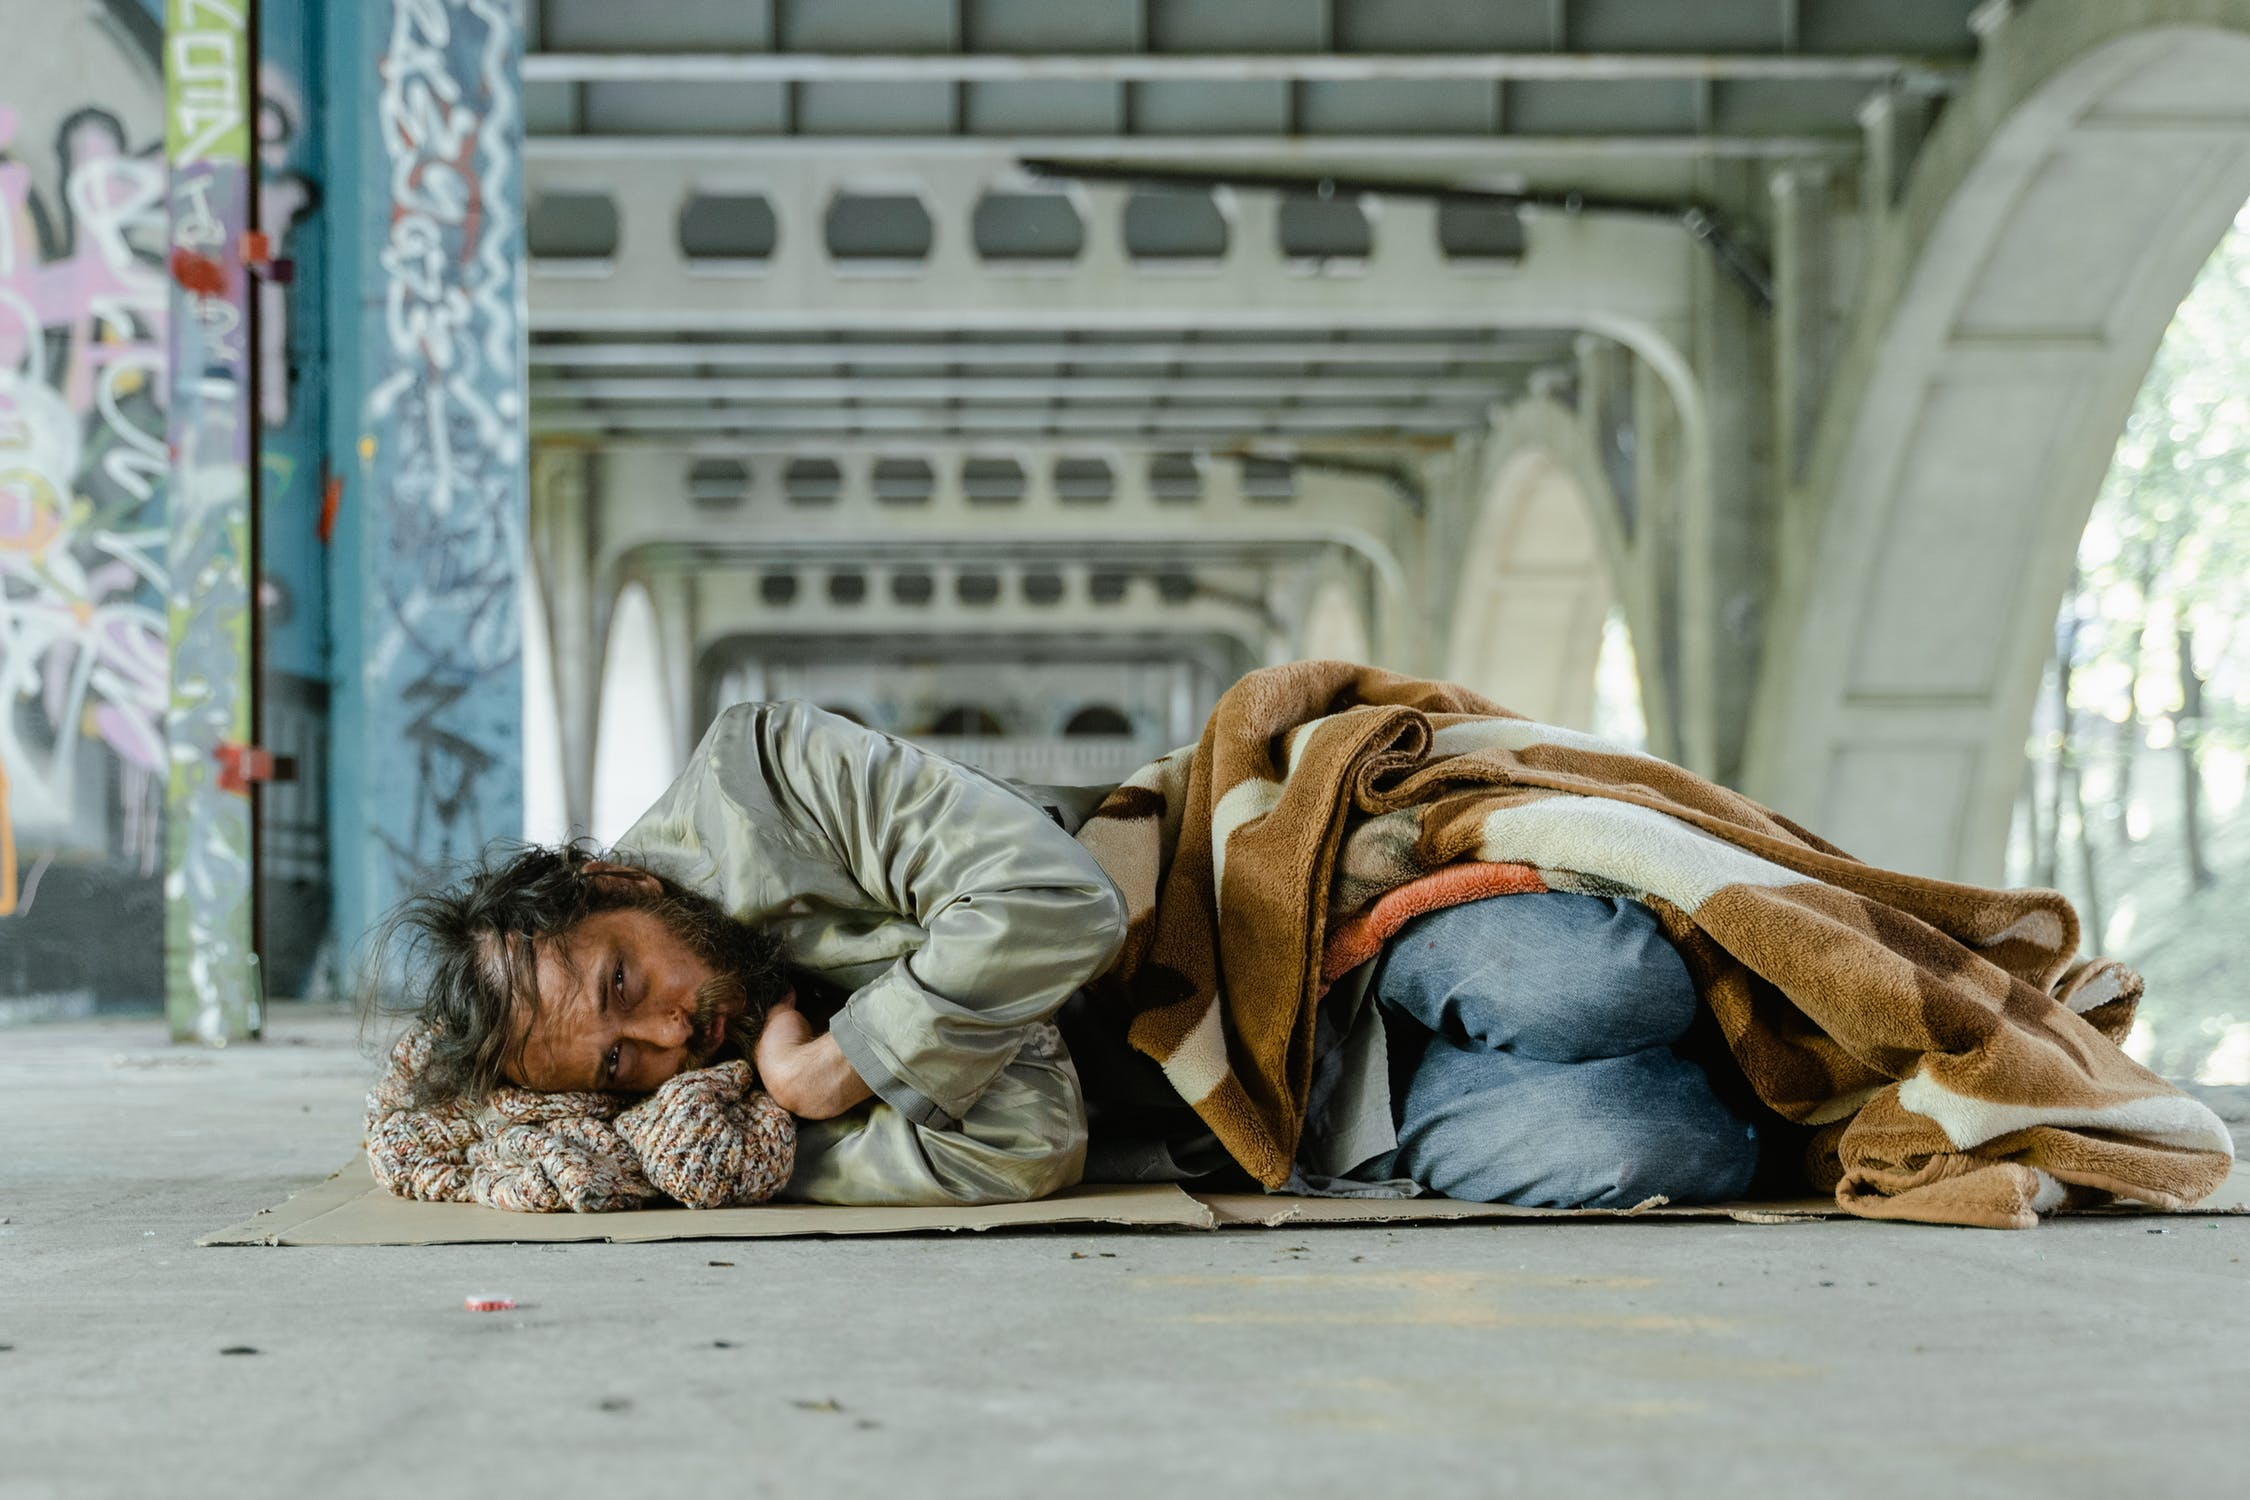 There was a homeless man sleeping under the bridge | Source: Pexels